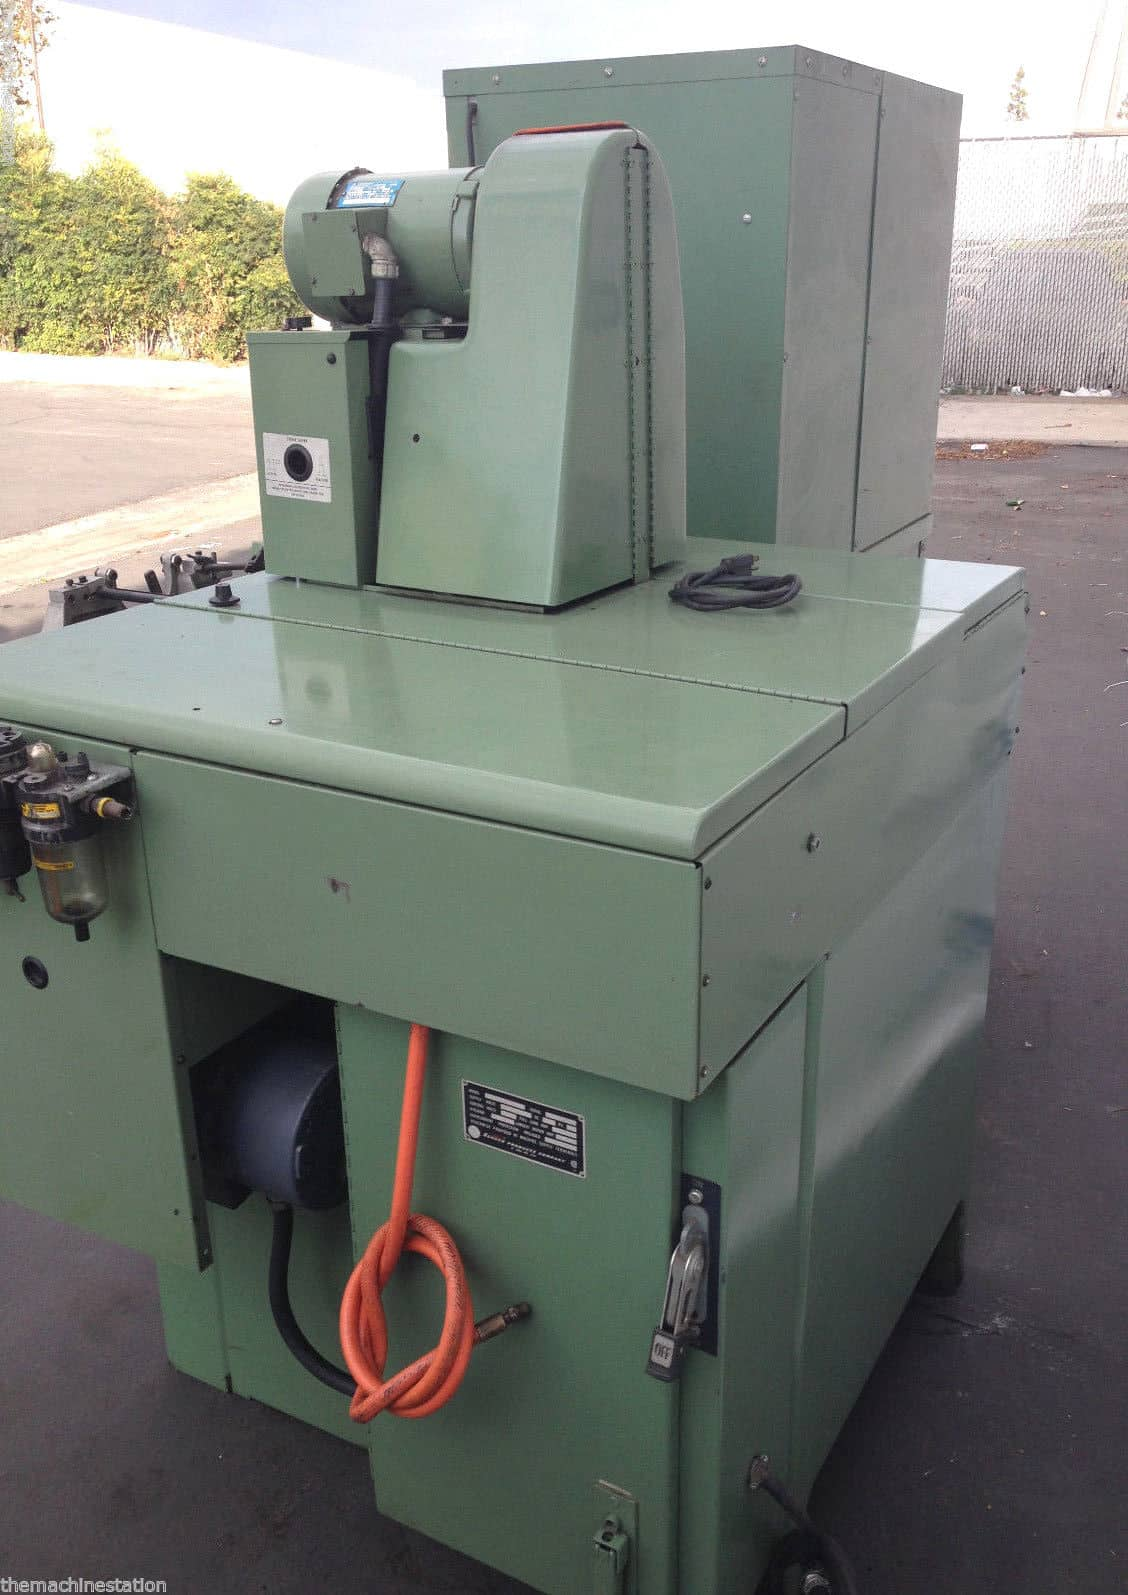 USED-Sunnen Honing Machine Model MBC-1804D - MachineStation